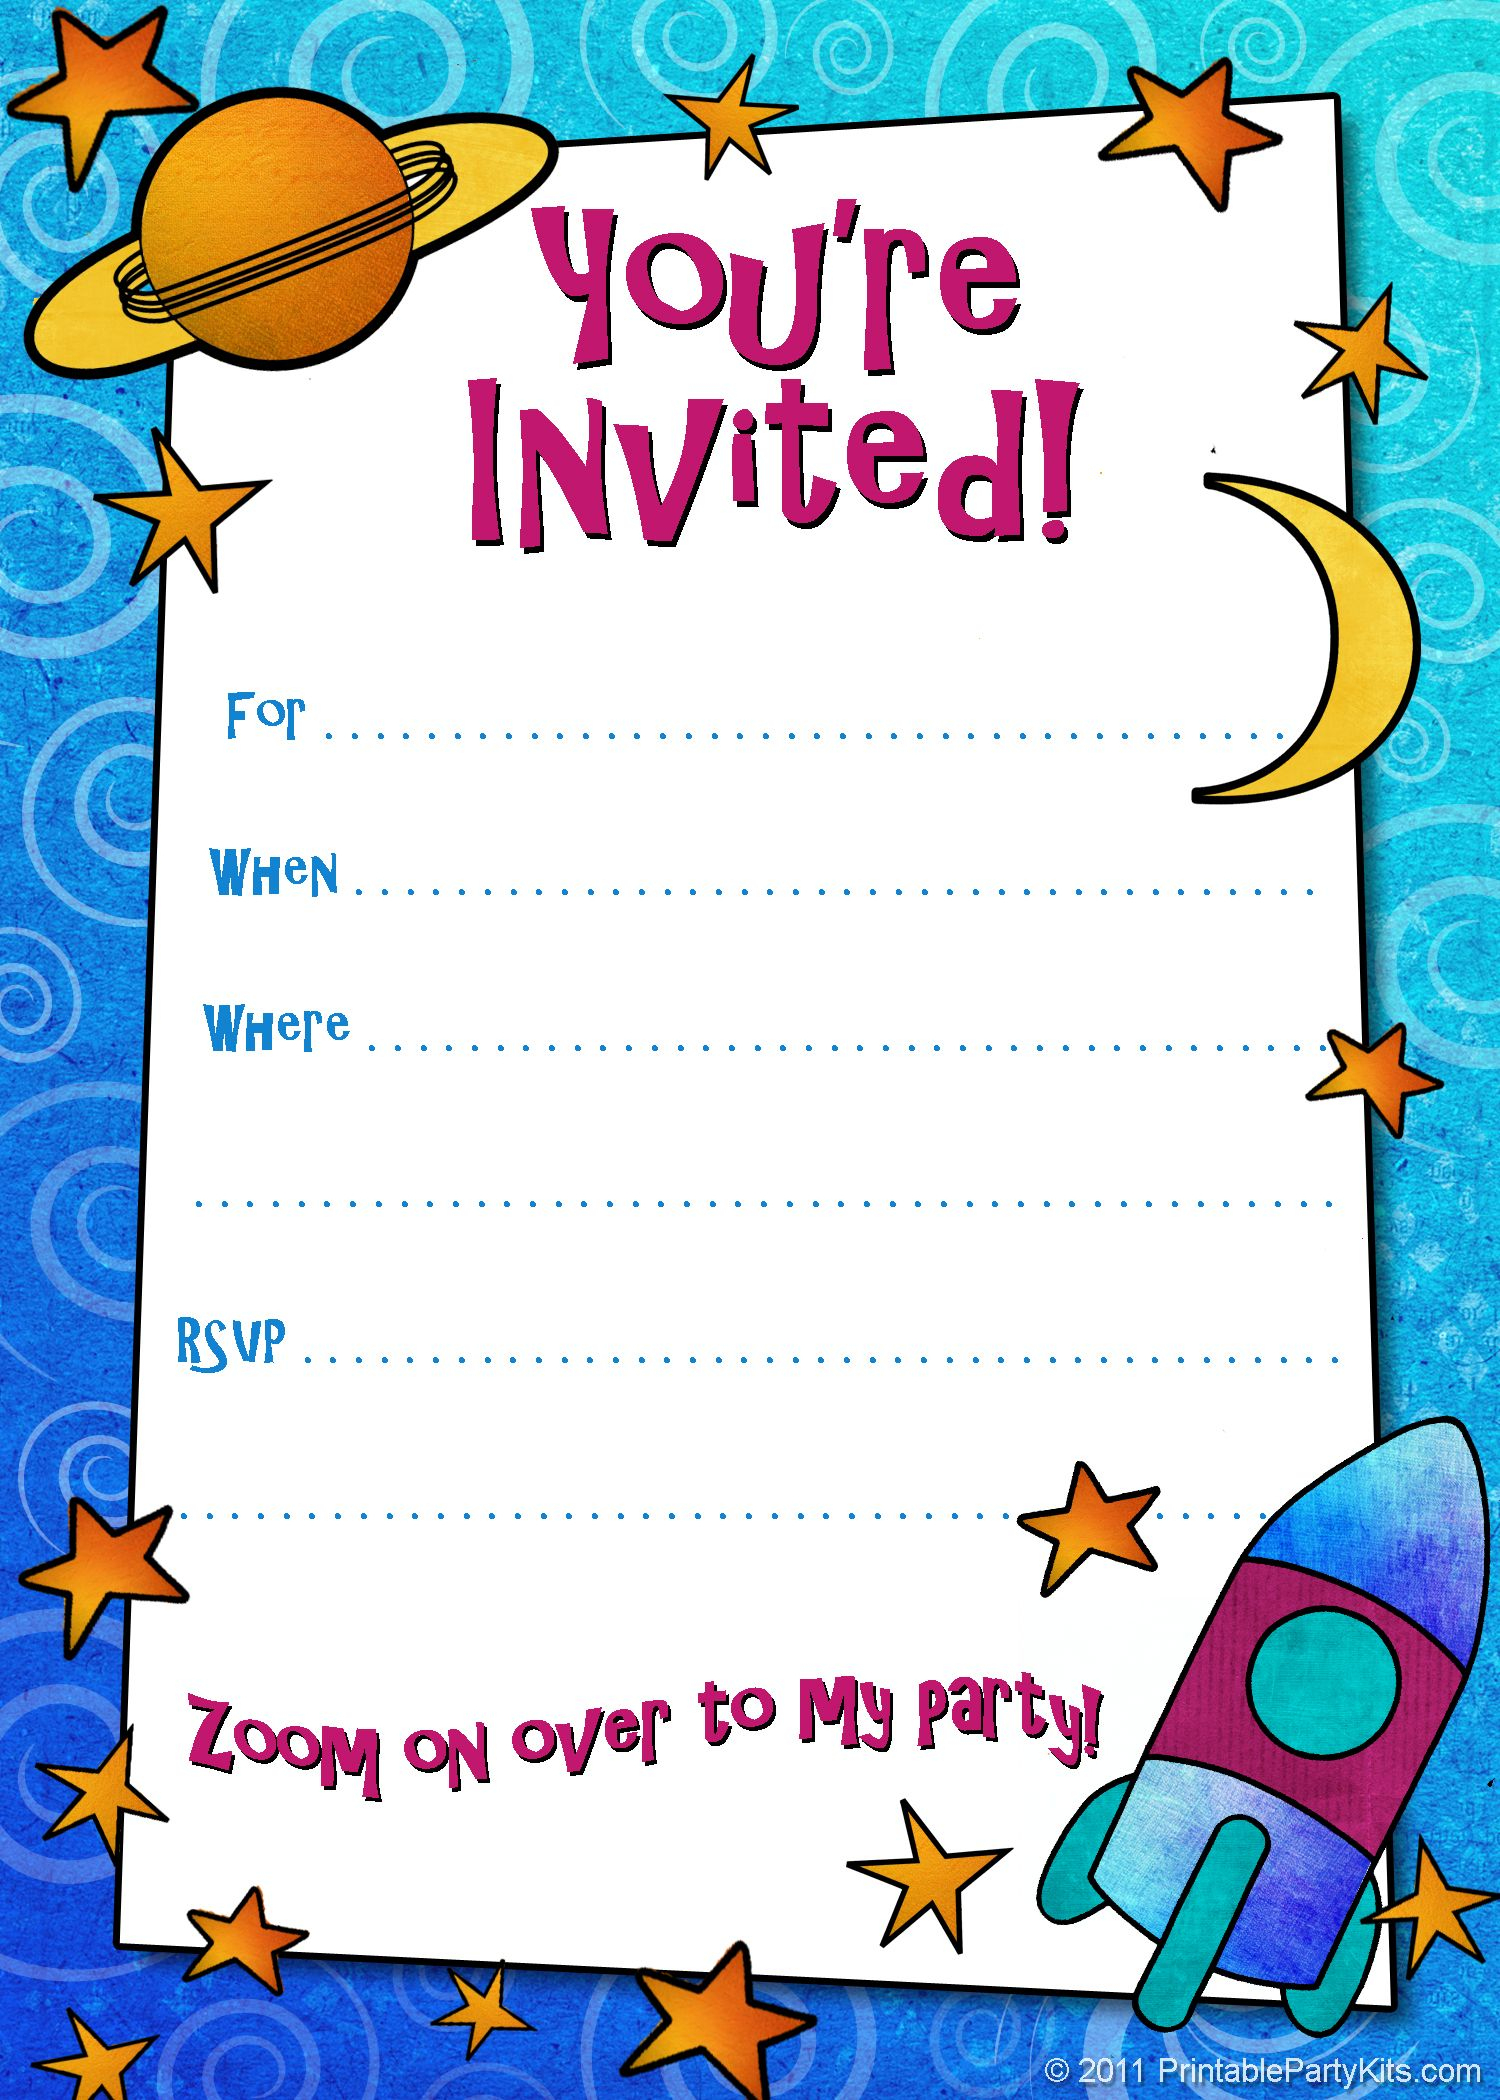 Free Printable Boys Birthday Party Invitations | Birthday Party - Free Printable Birthday Invitations For Kids